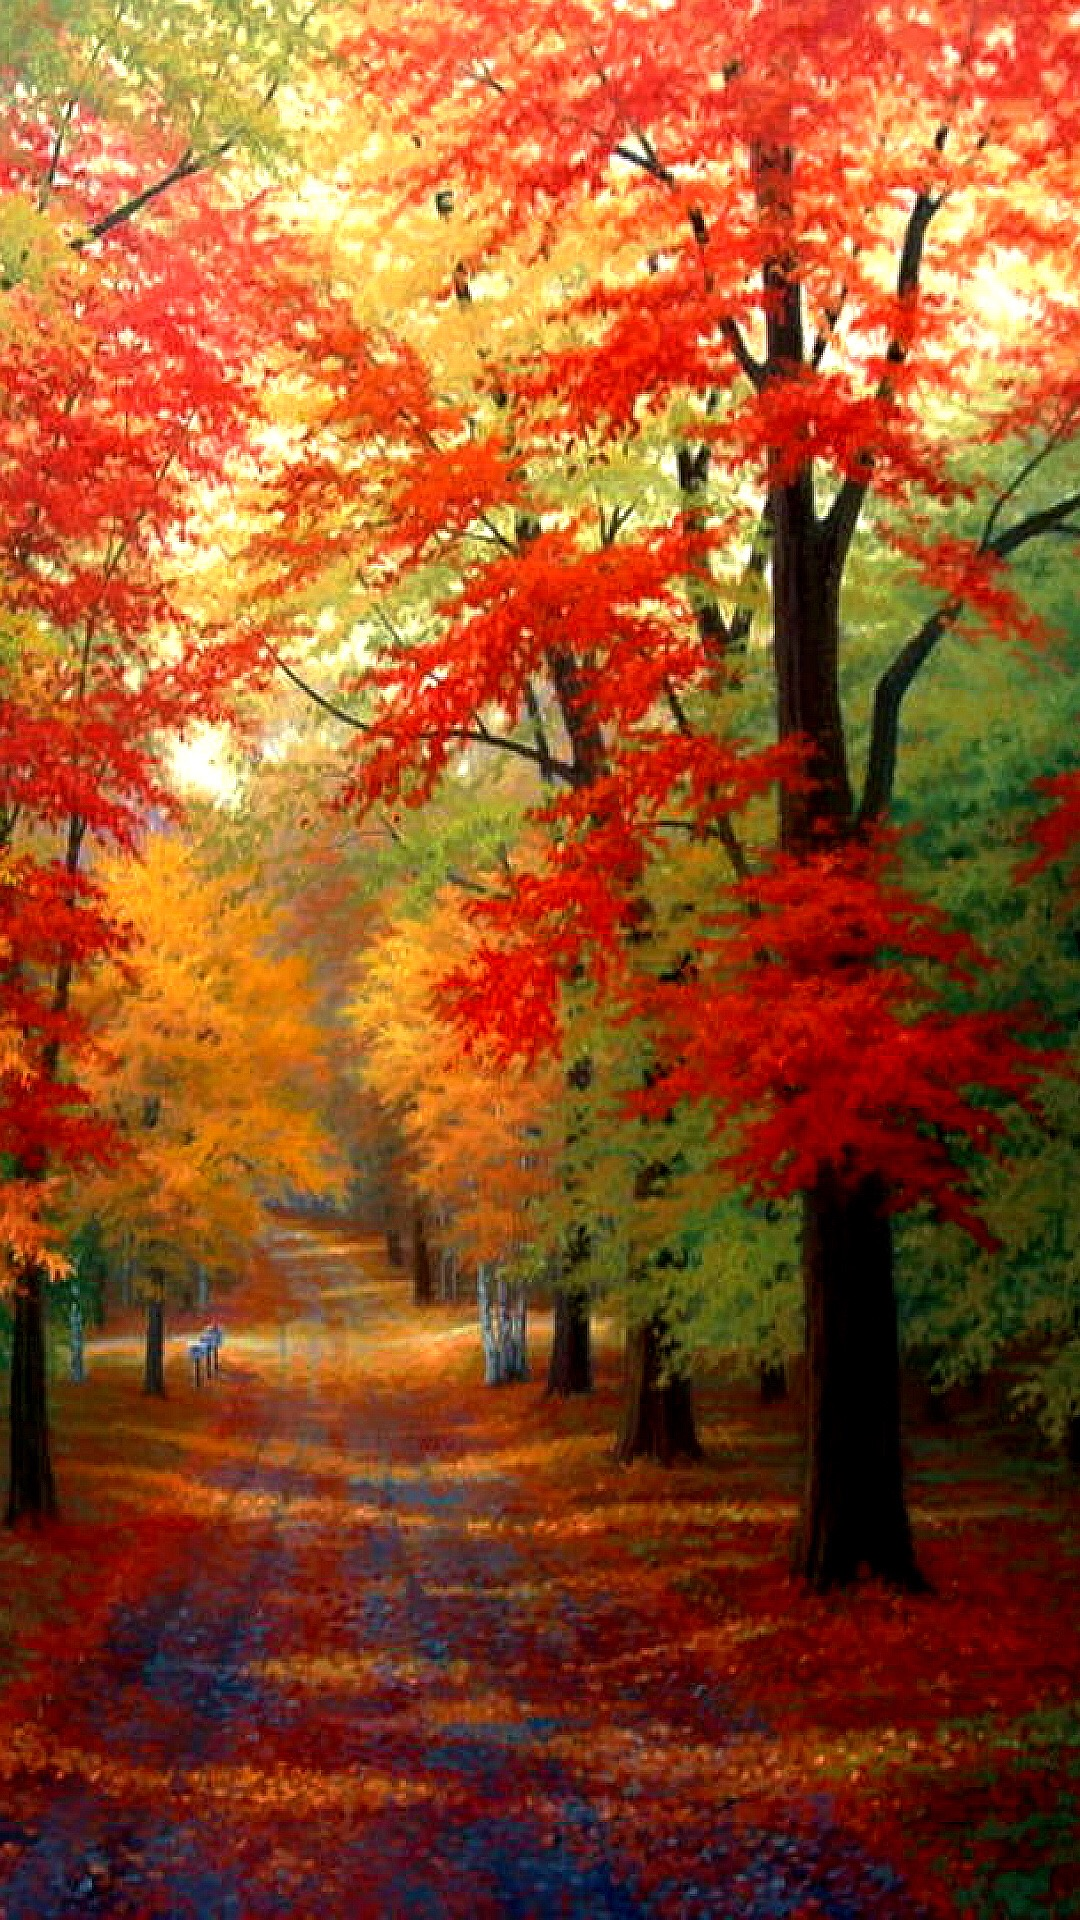 Fall Country Wallpaper Zedge Free Wallpapers Downloadwallpaper Org